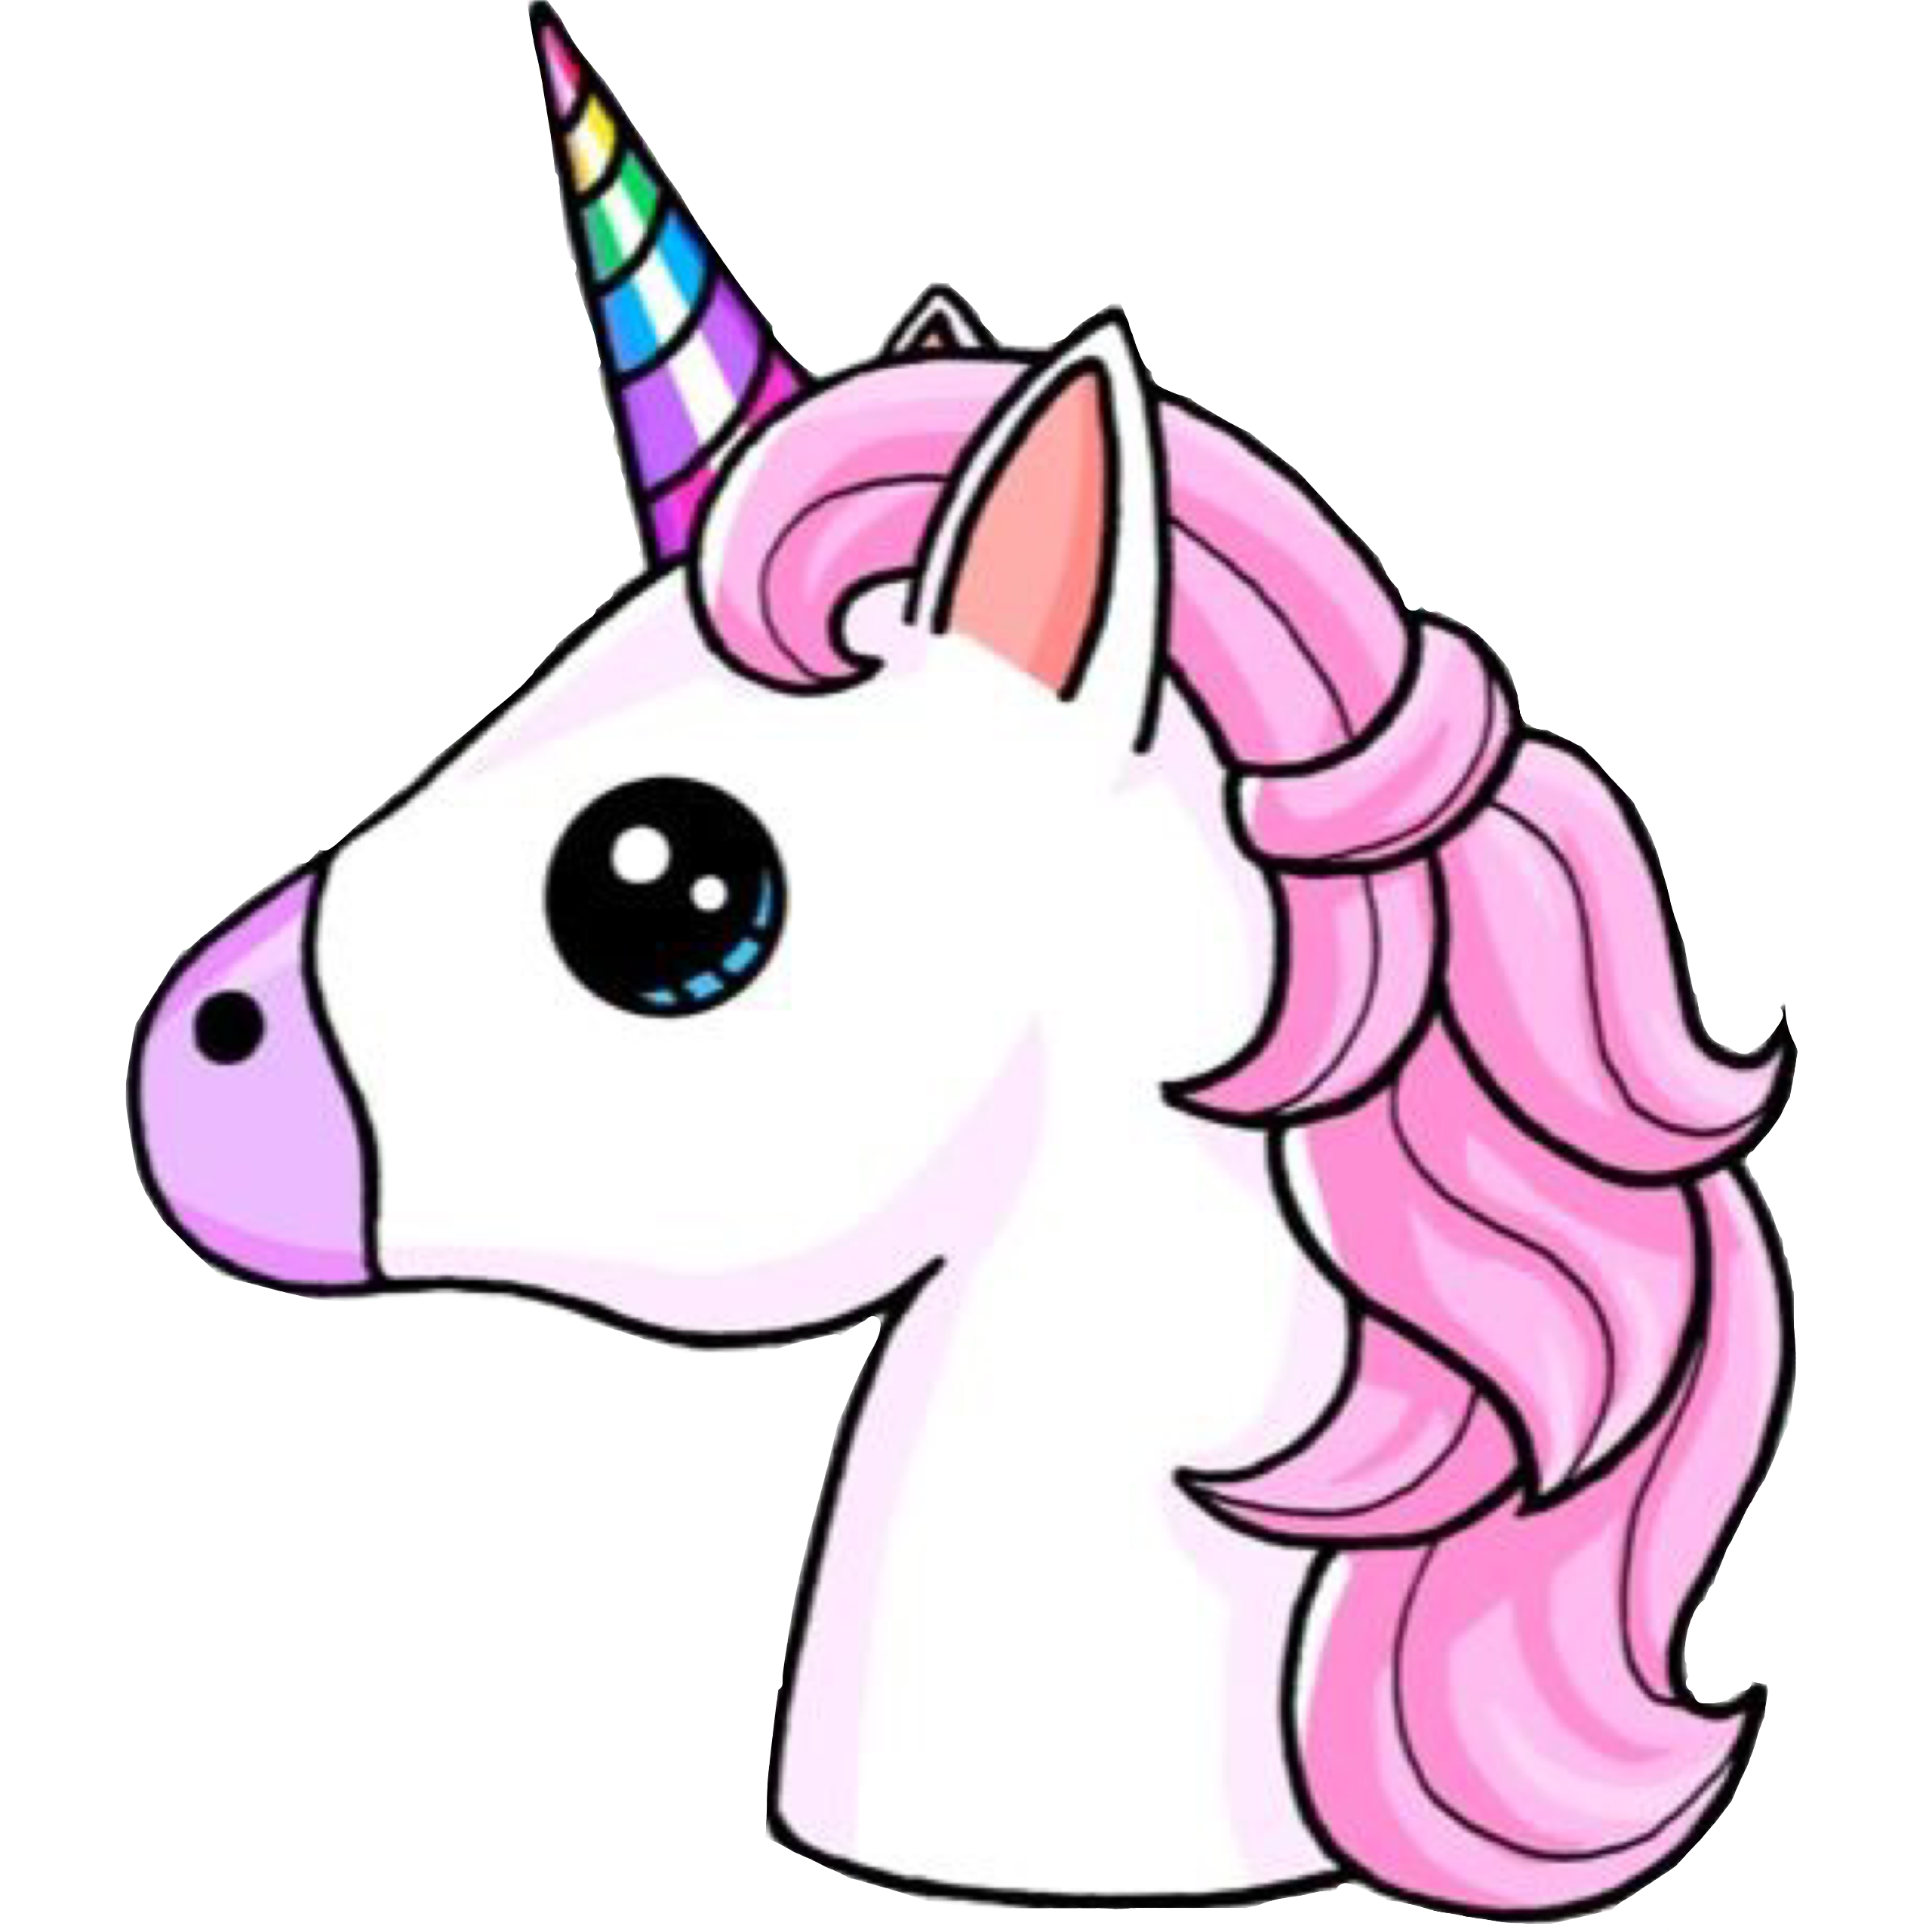 Art Unicorn Tumblr Interesting Colors Cool Unicornio